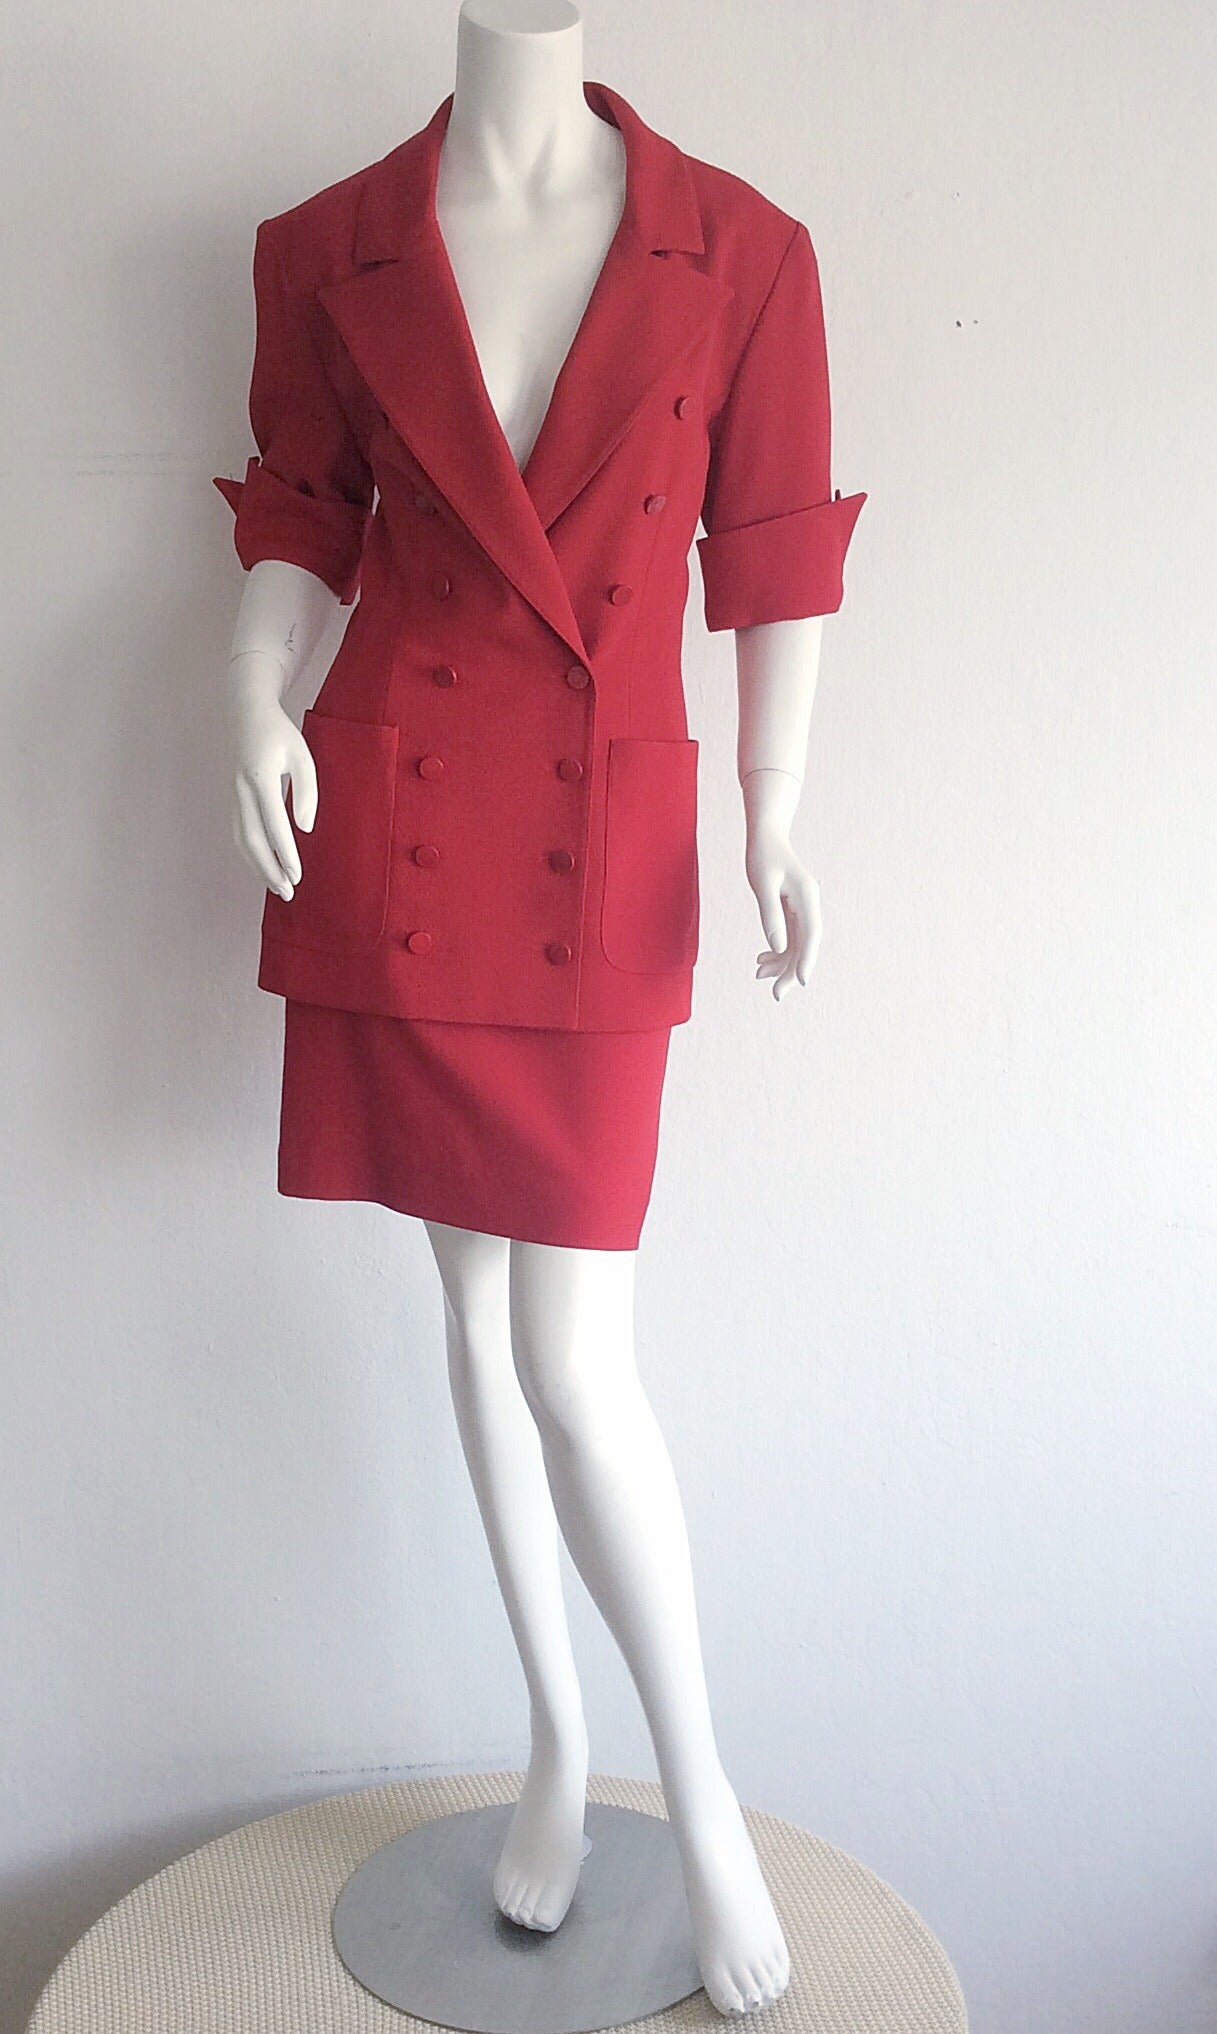 Incredible vintage Karl Lagerfeld for Bergdorf Goodman short sleeved double breasted suit! Flattering short cuffed sleeves, with chic double breasted bodice. High waisted pencil skirt. Fully lined. In great condition. Perfect together, yet great as